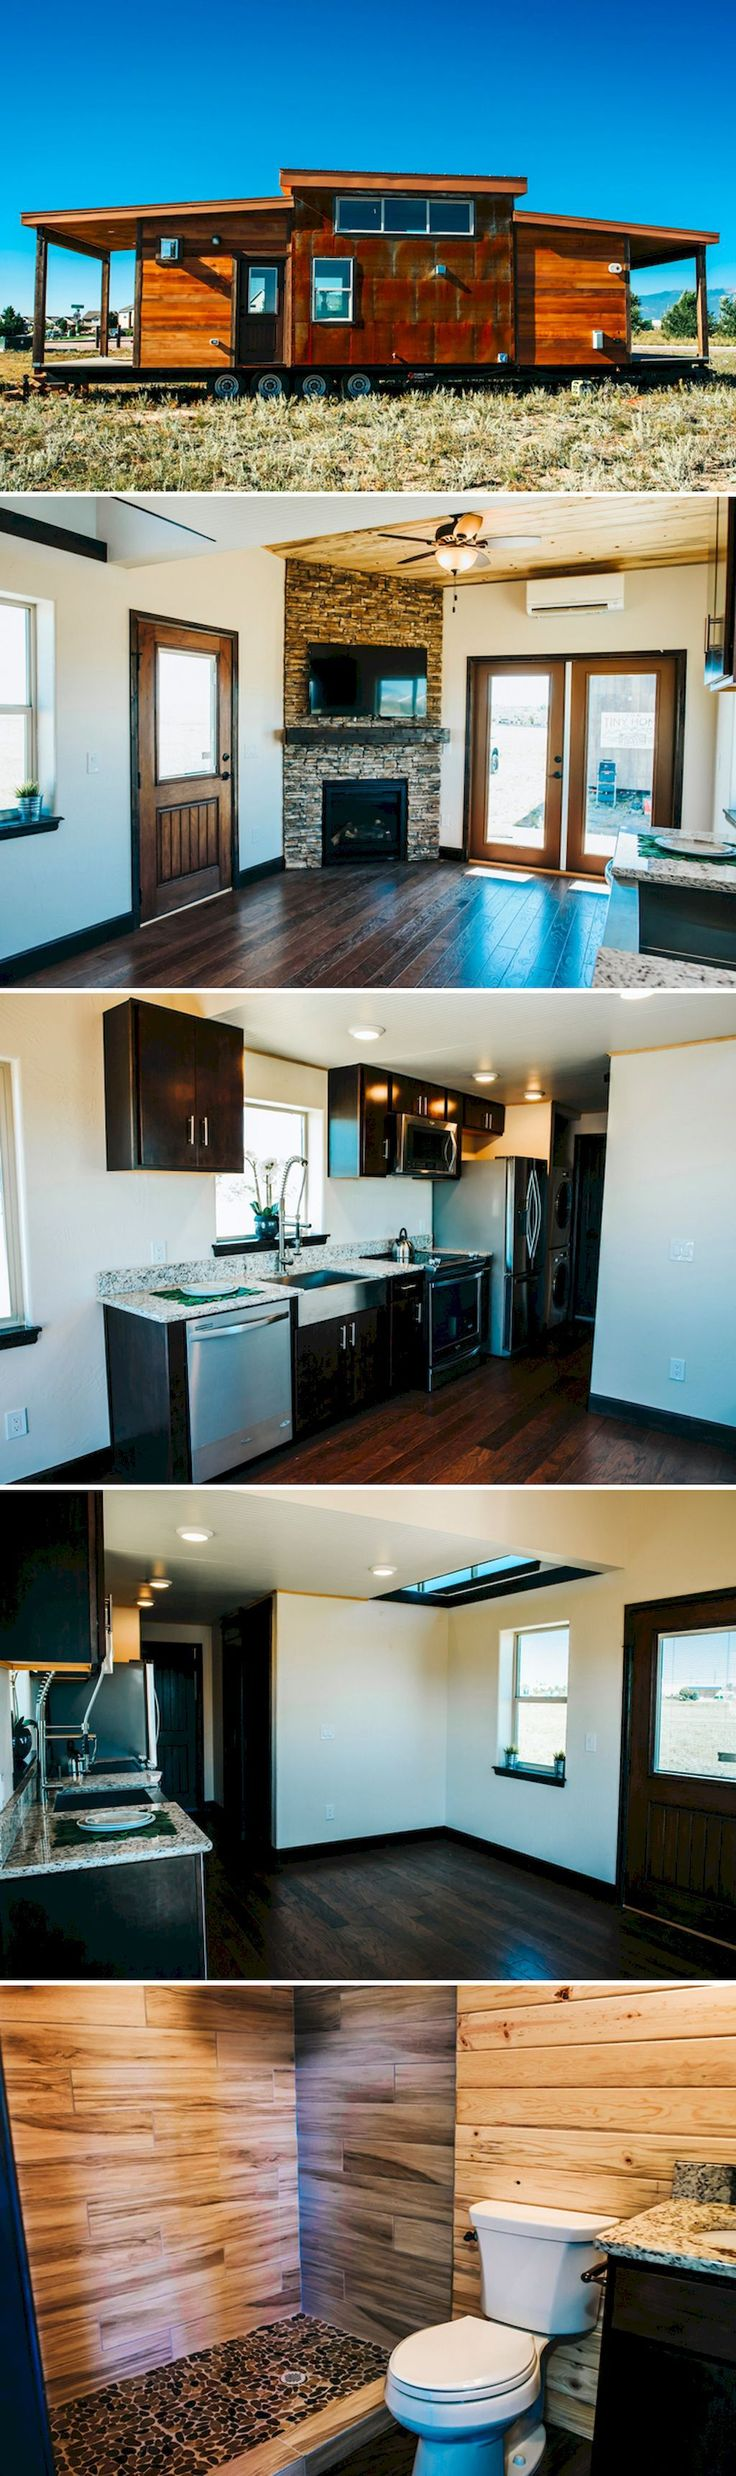 Tiny house bus living design and decorating ideas (61)